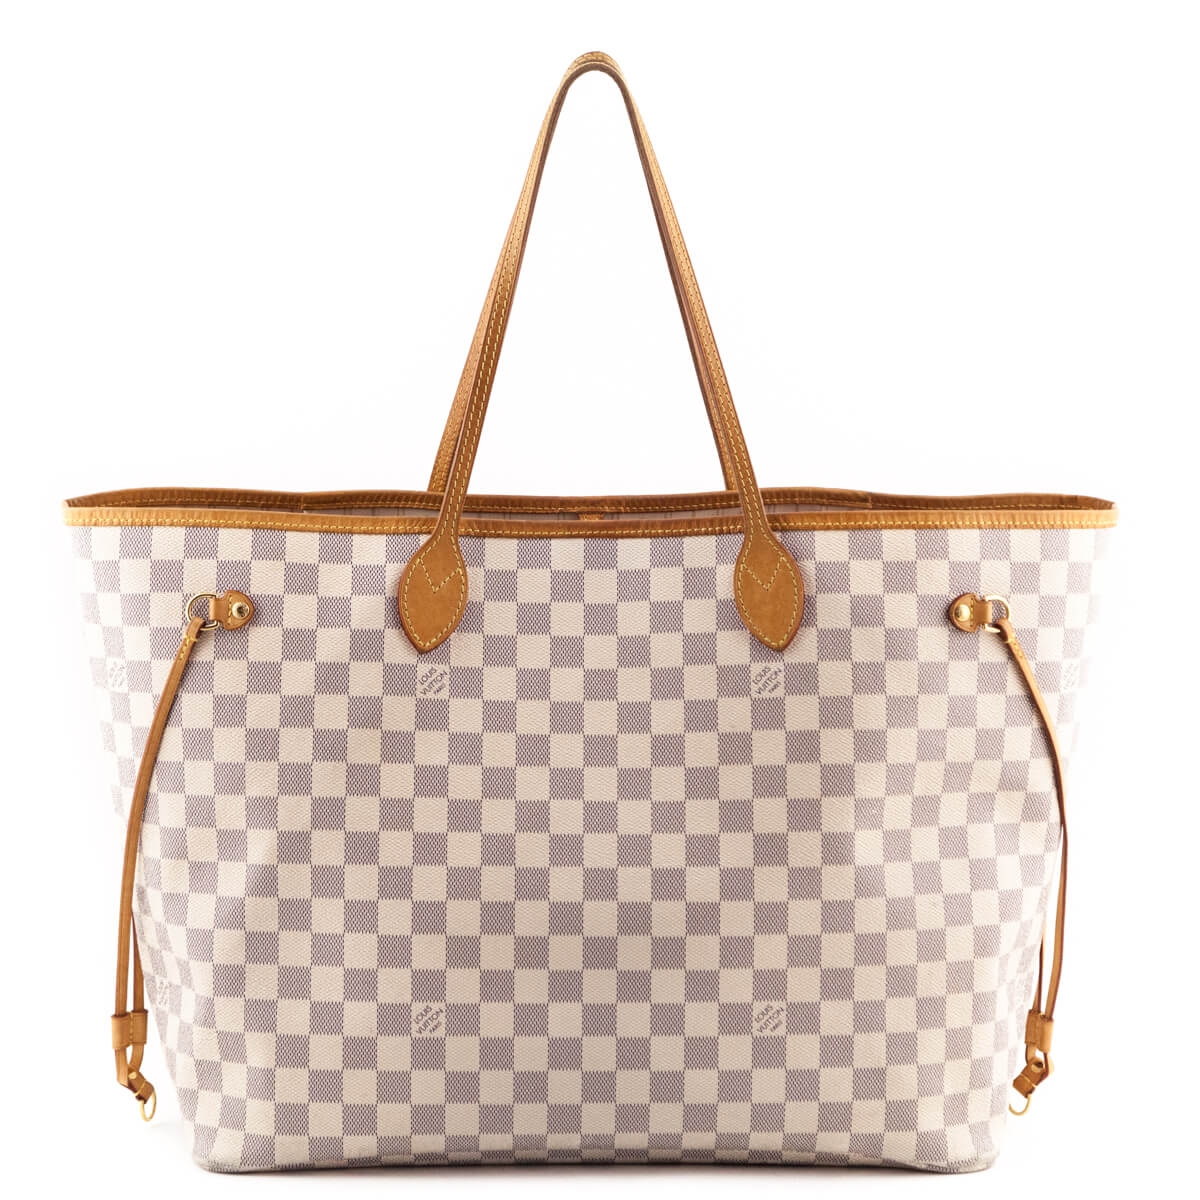 37628cfa4c Louis Vuitton Damier Azur Neverfull GM - LOVE that BAG - Preowned Authentic  Designer Handbags ...